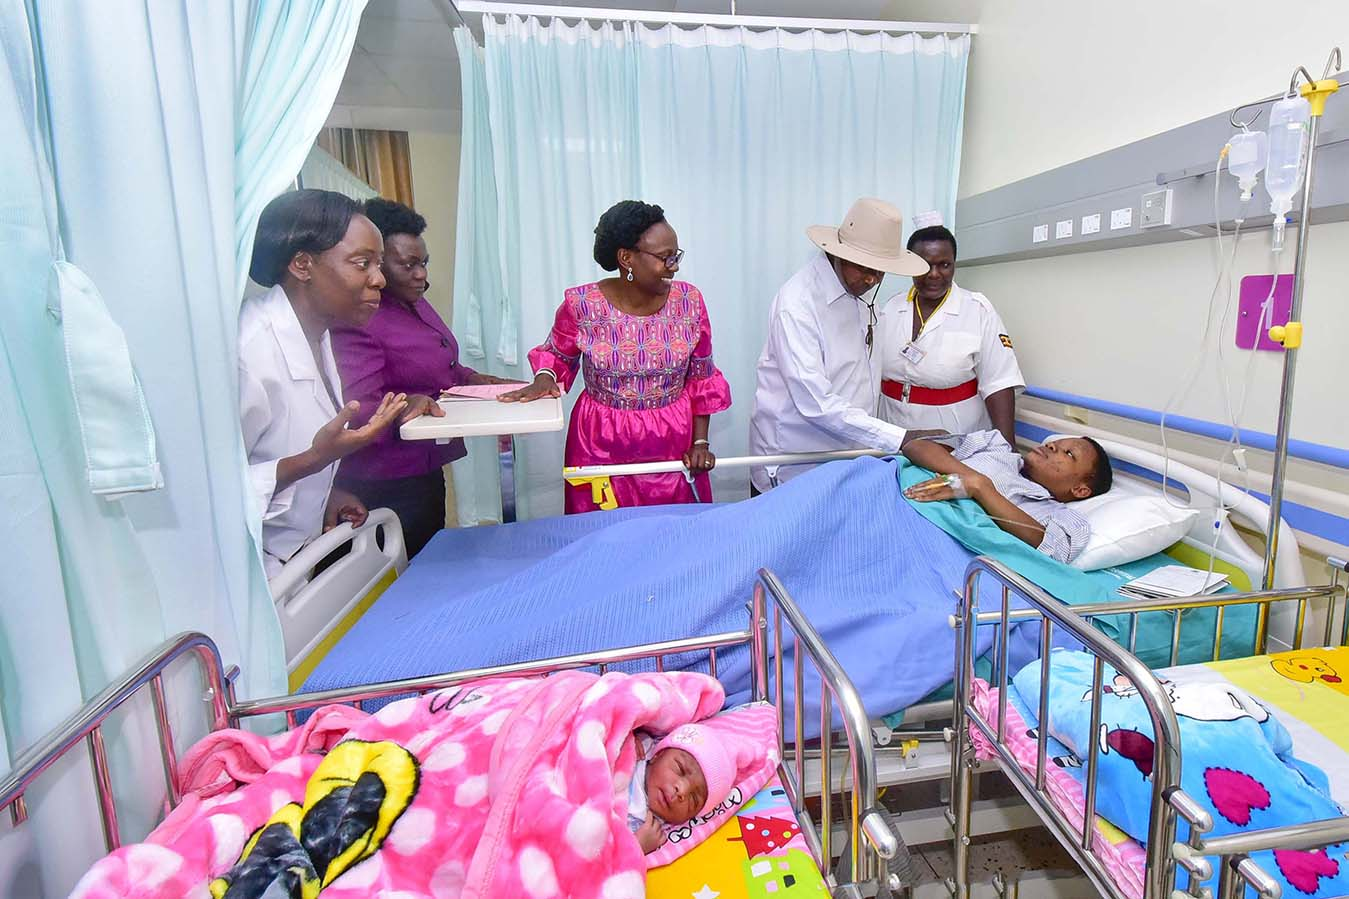 President Yoweri Kaguta Museveni together with health Ministers Ruth Acheng and Sarah Opendi among other health officials and hospital staff interacting with one of the new mothers , Angella Nalukenge while inspecting some of the facilities of the New Mul